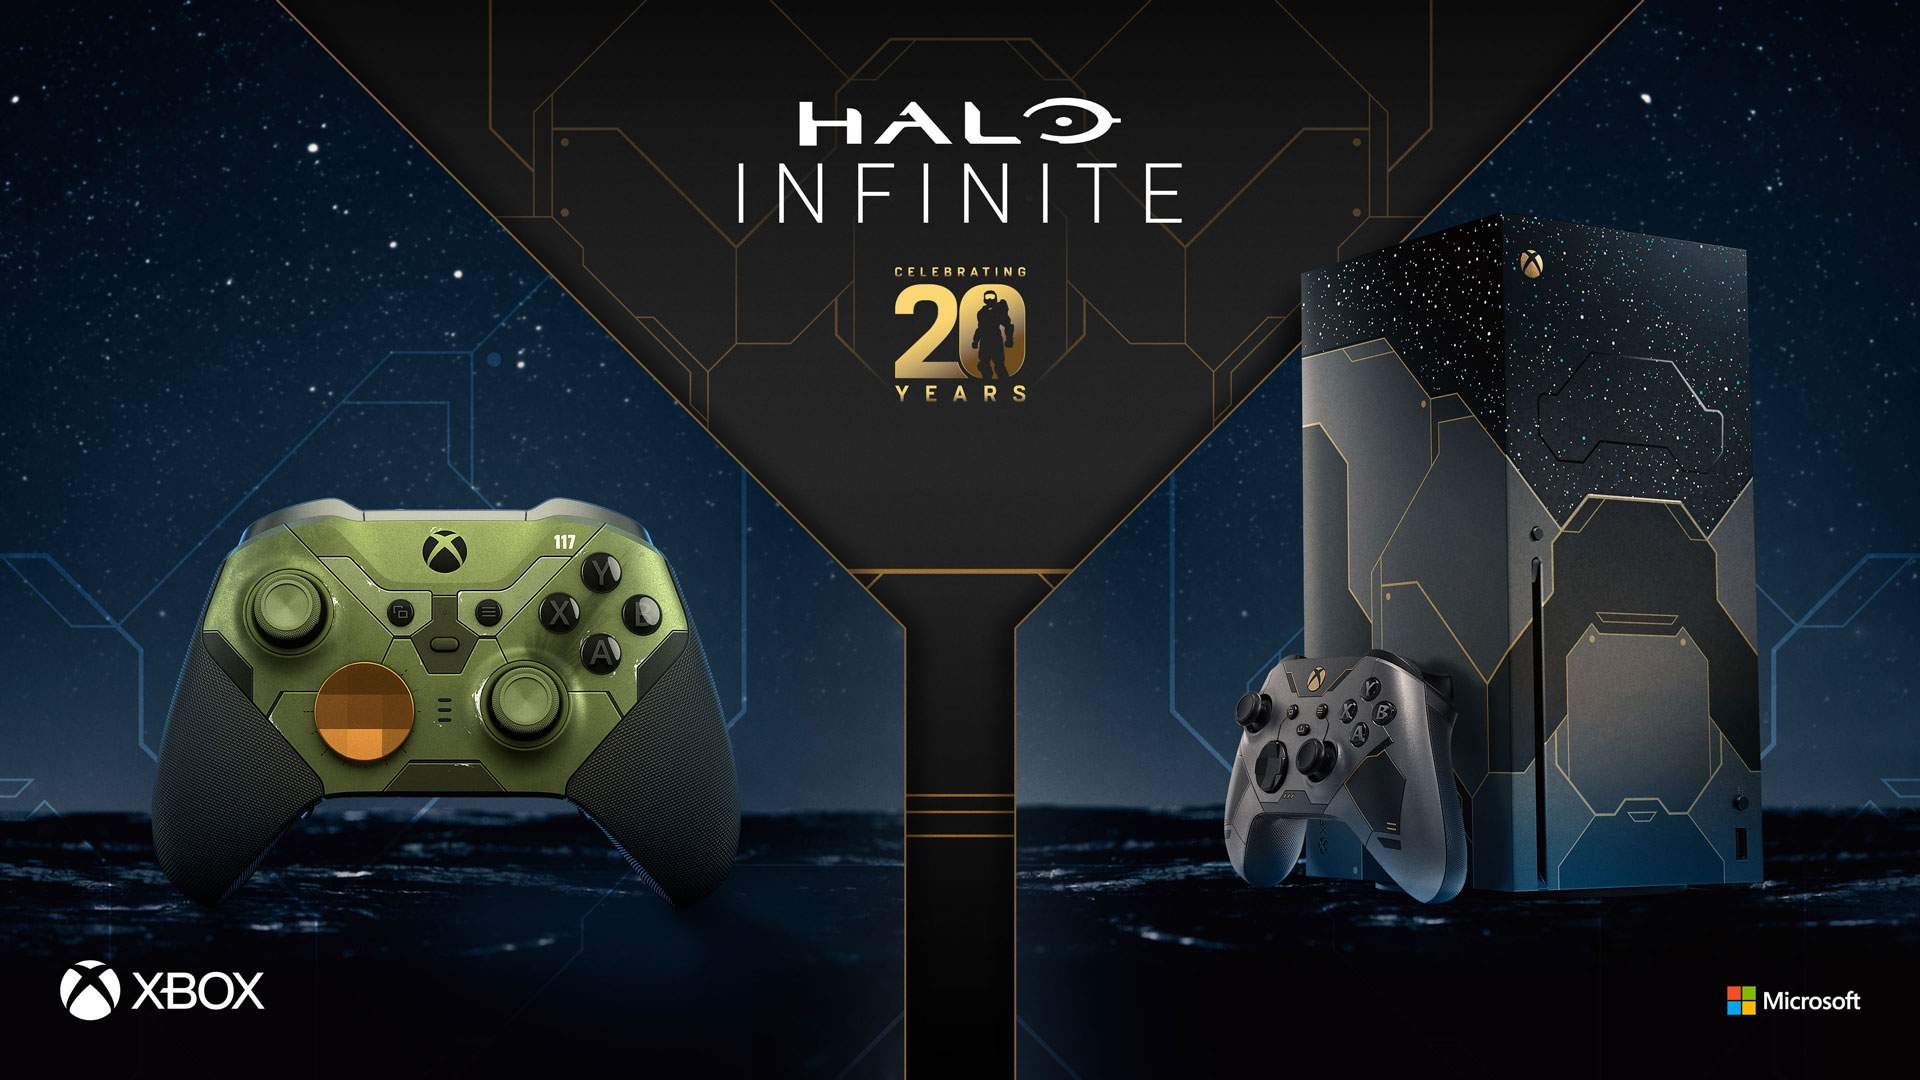 Xbox Series X – Halo Infinite Limited Edition & Elite Series 2 Controller